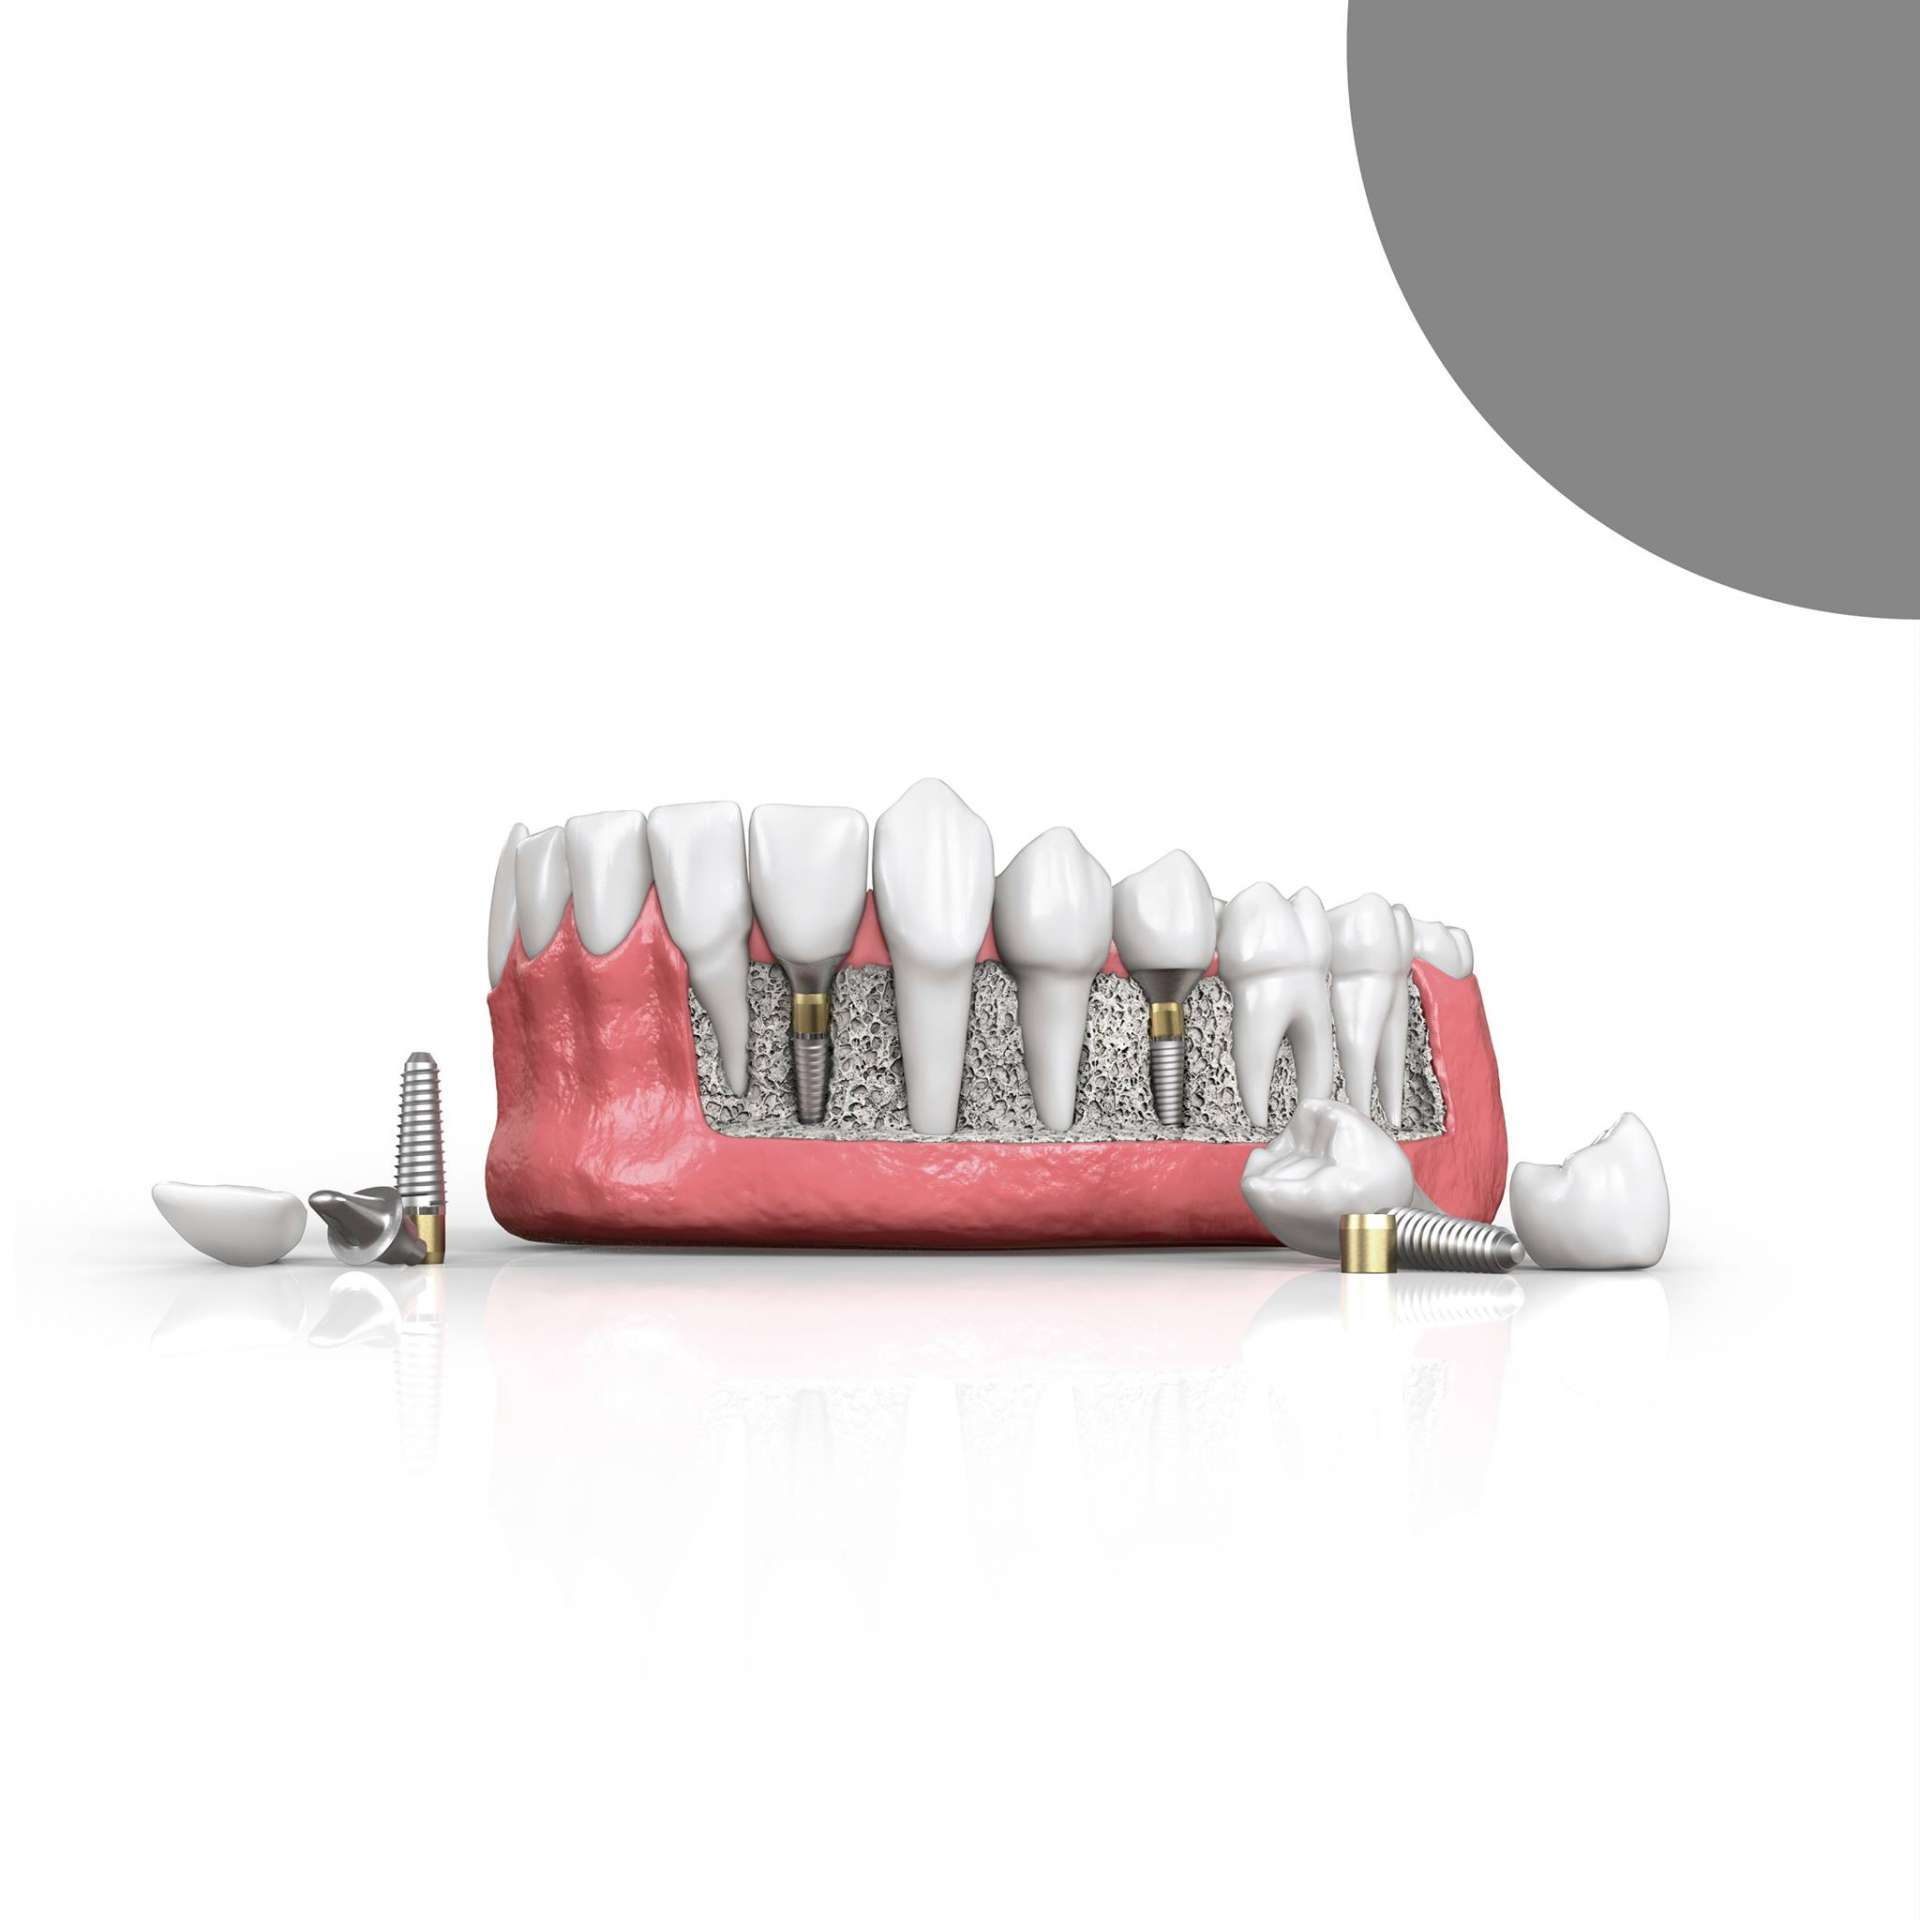 Dental implants - the ideal solution if you are missing one or more teeth